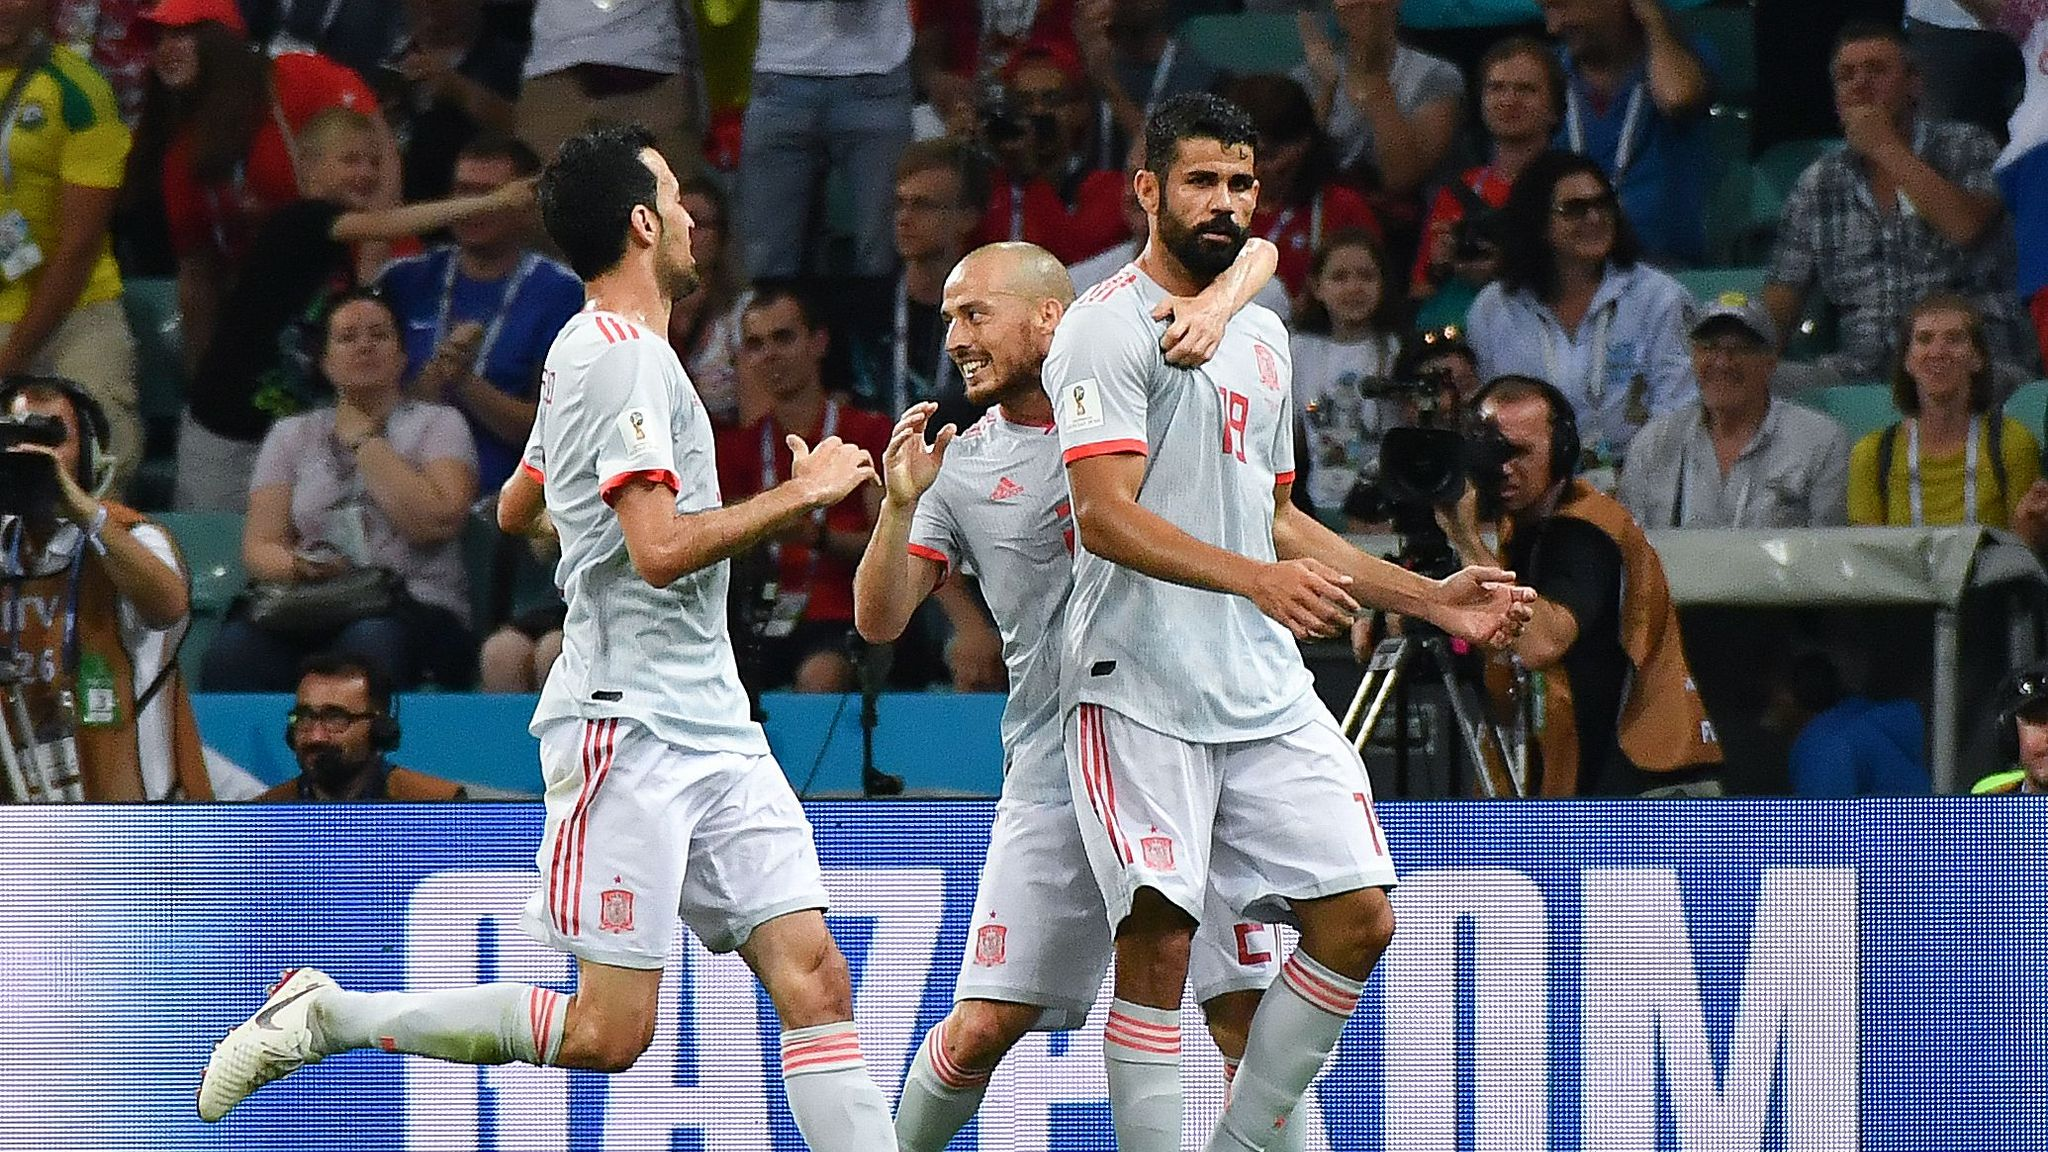 World Cup 2018: Vote for your top performers and best goal